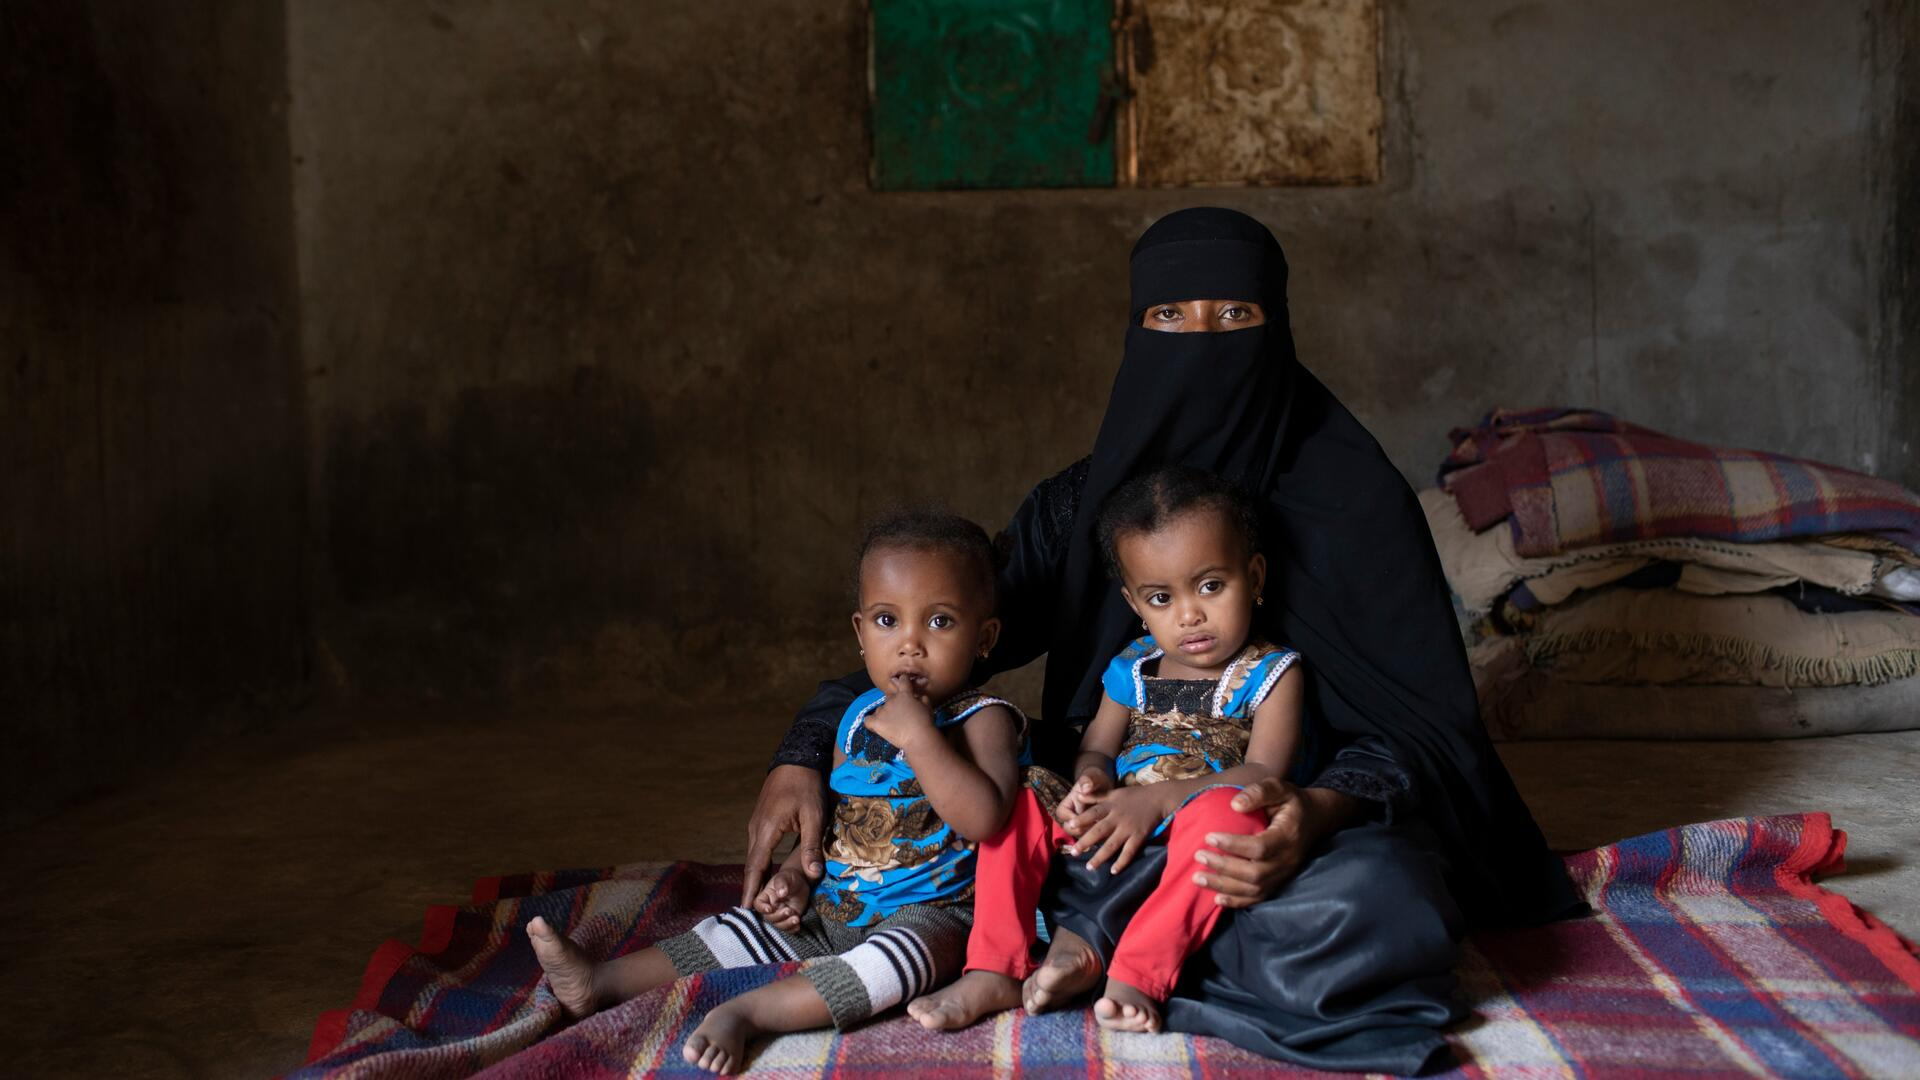 A mother in Yemen sits with her twin daughters